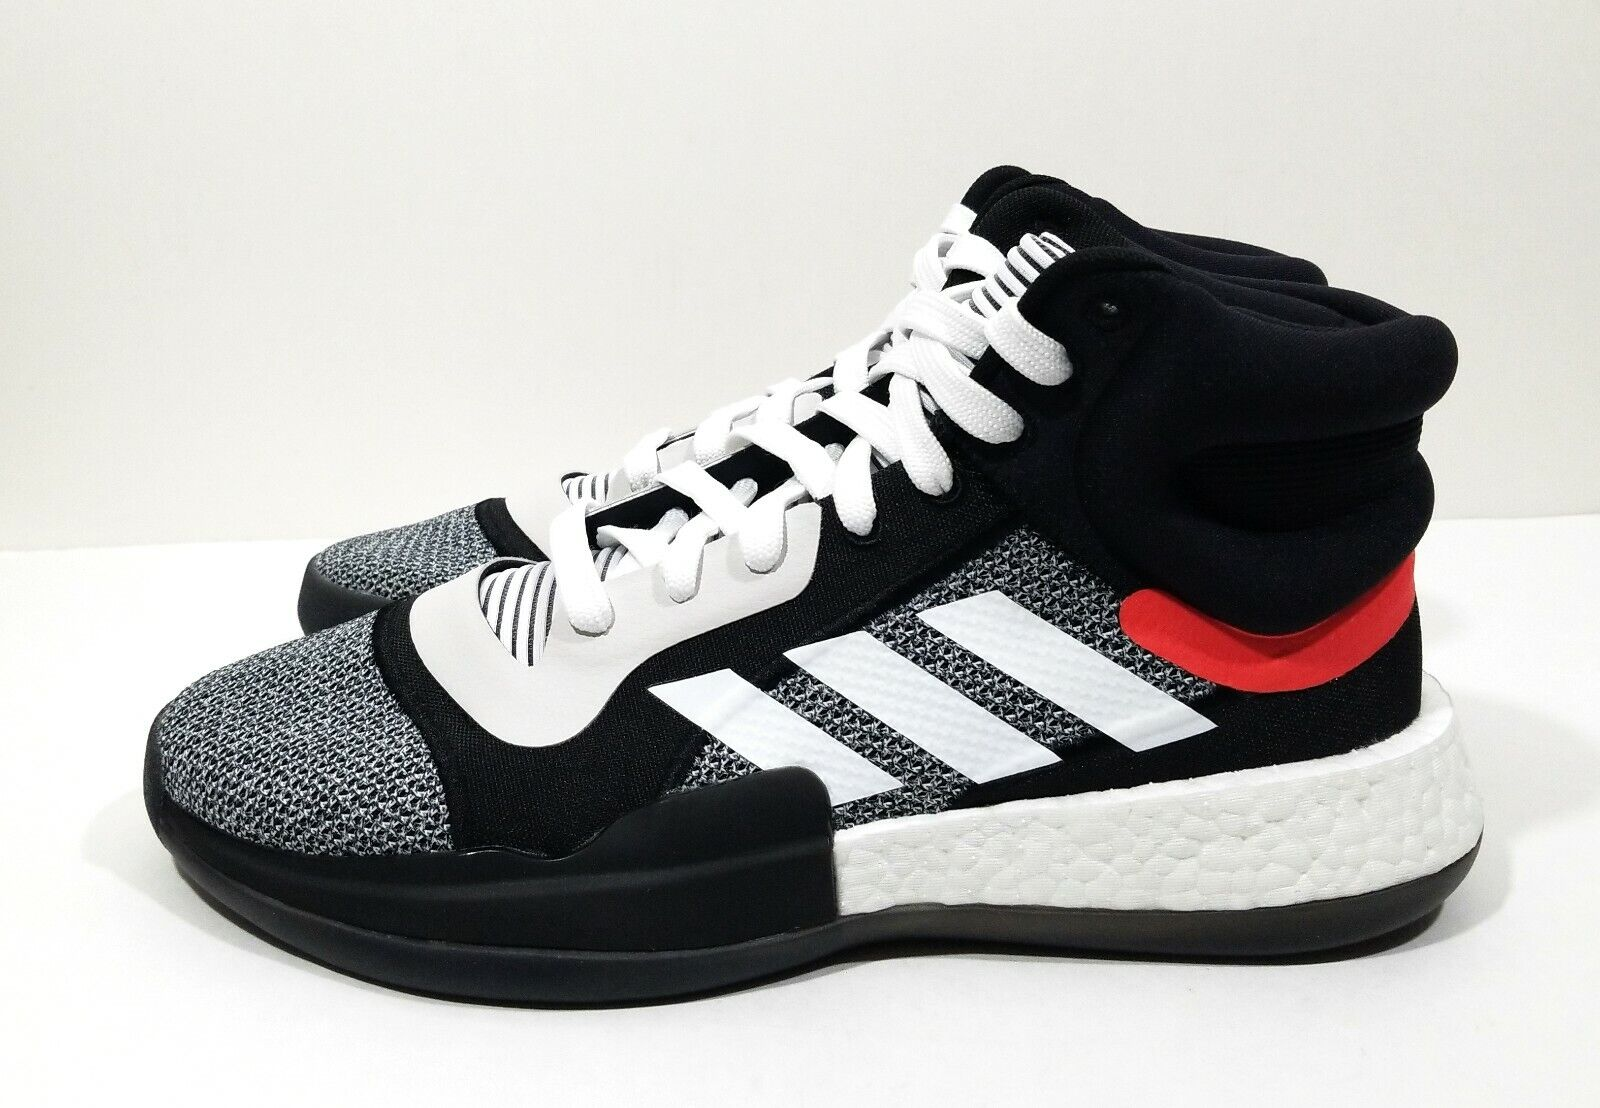 Adidas Marquee Boost Mens Basketball shoes Black White Size 9